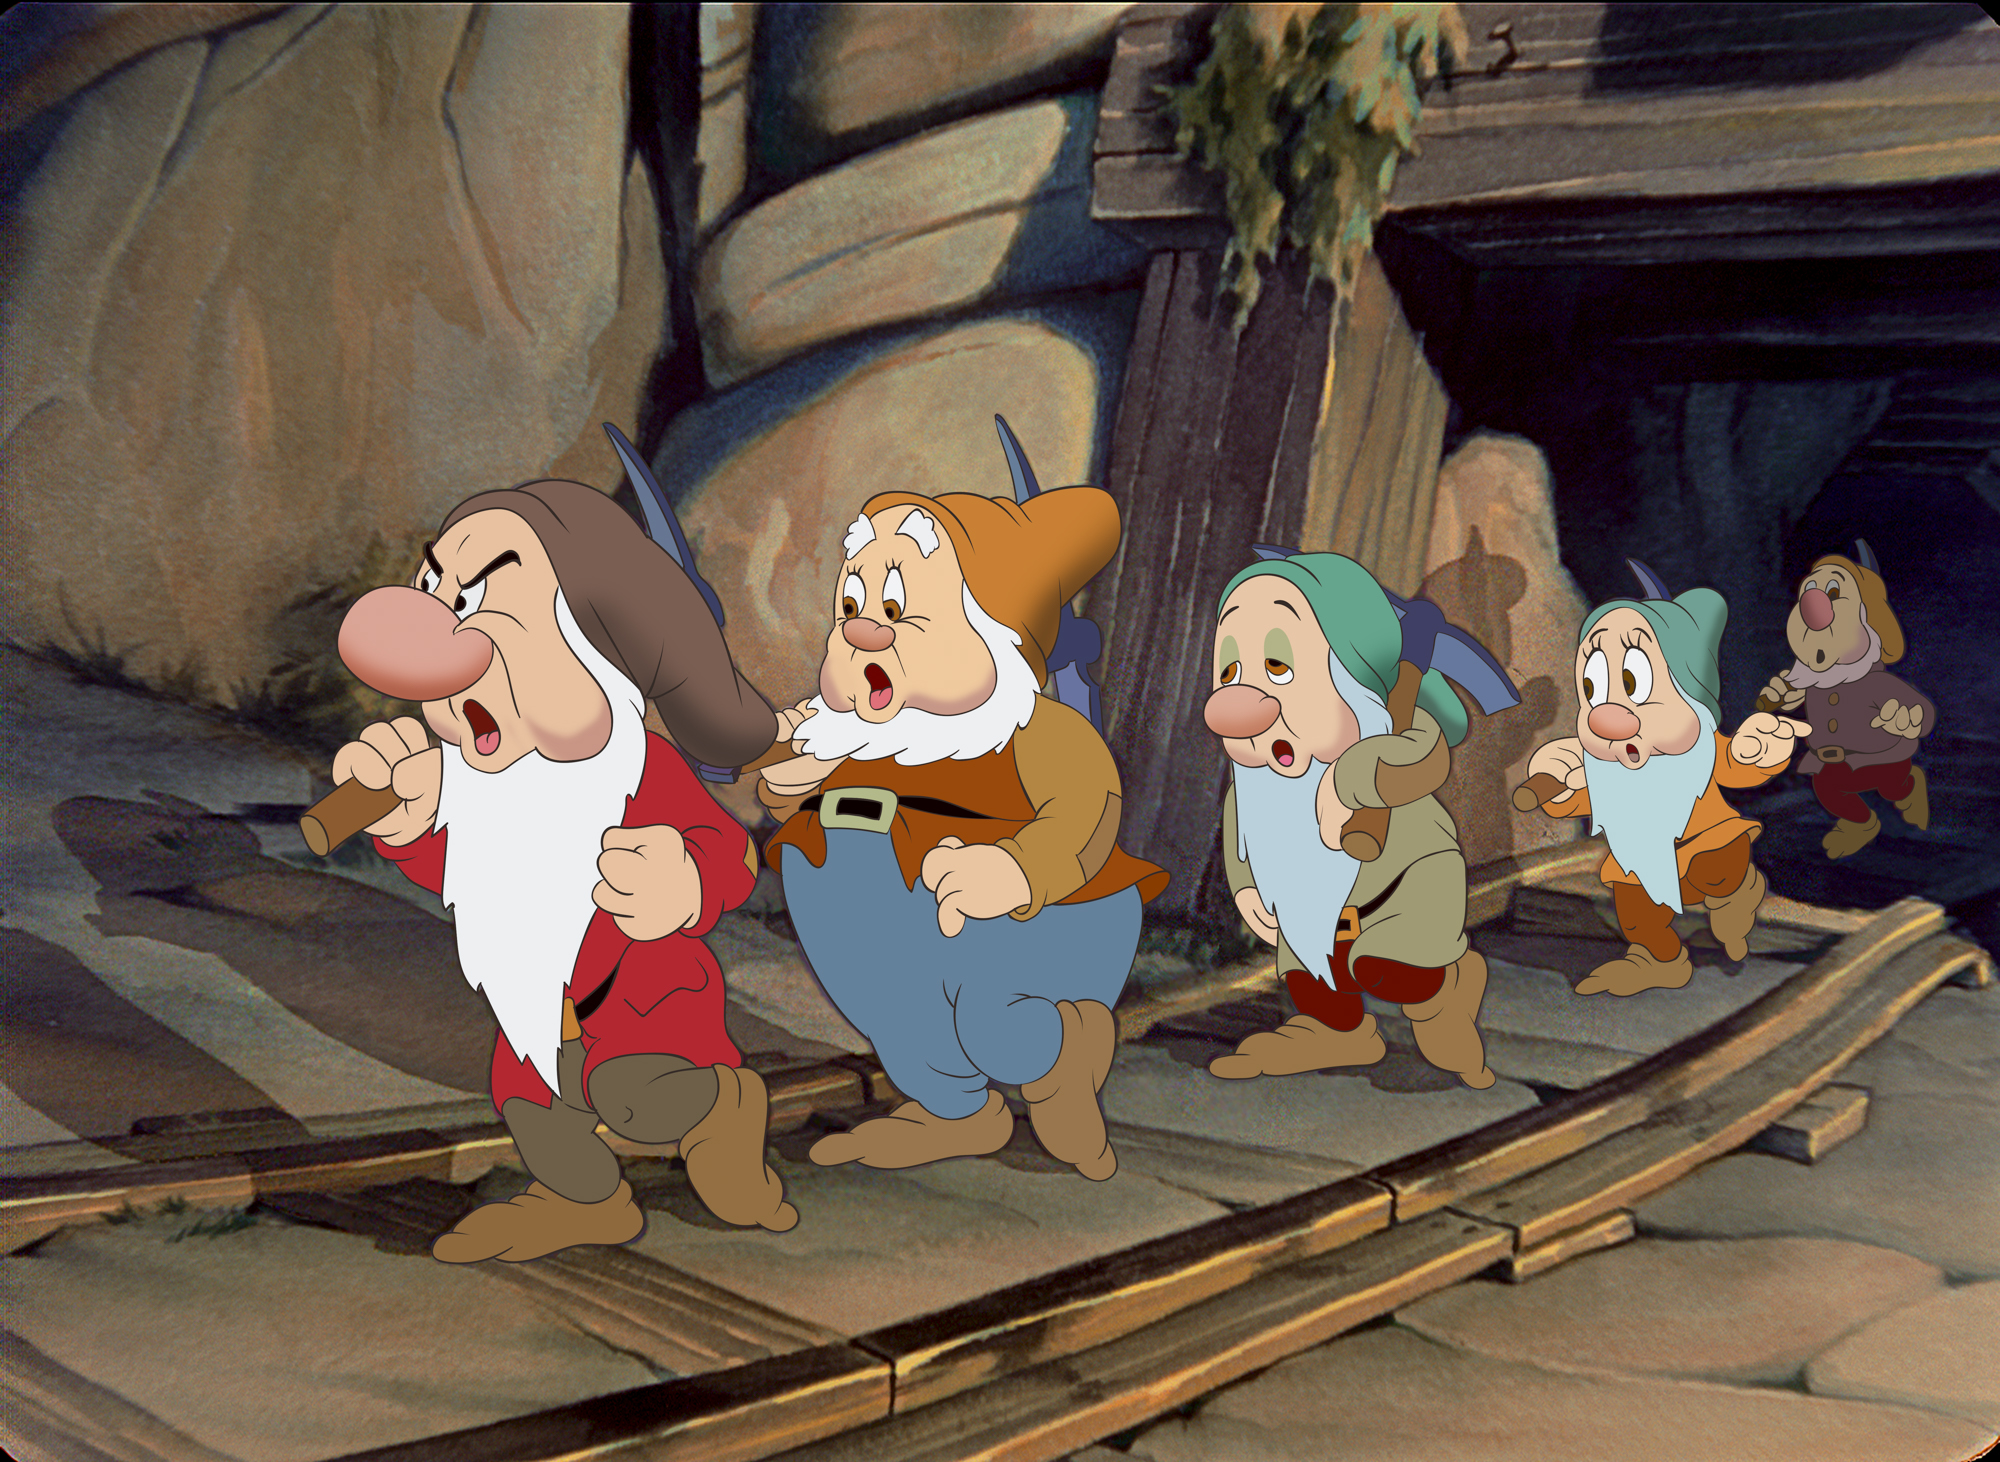 Pictures of snow white and seven dwarfs Cached